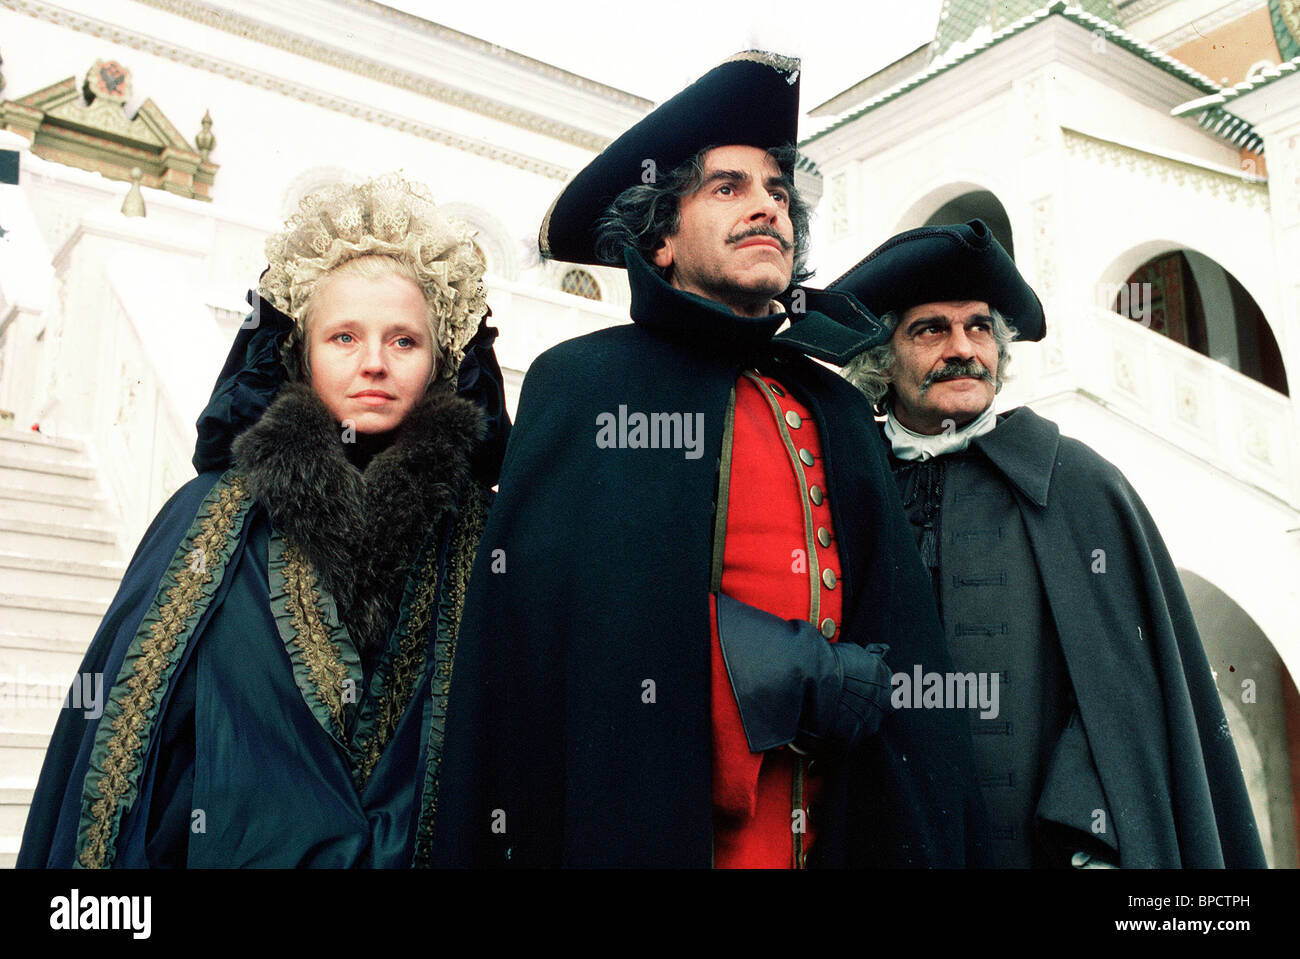 MAXIMILIAN SCHELL, OMAR SHARIF, HANNA SCHYGULLA, PETER THE GREAT, 1986 Stock Photo